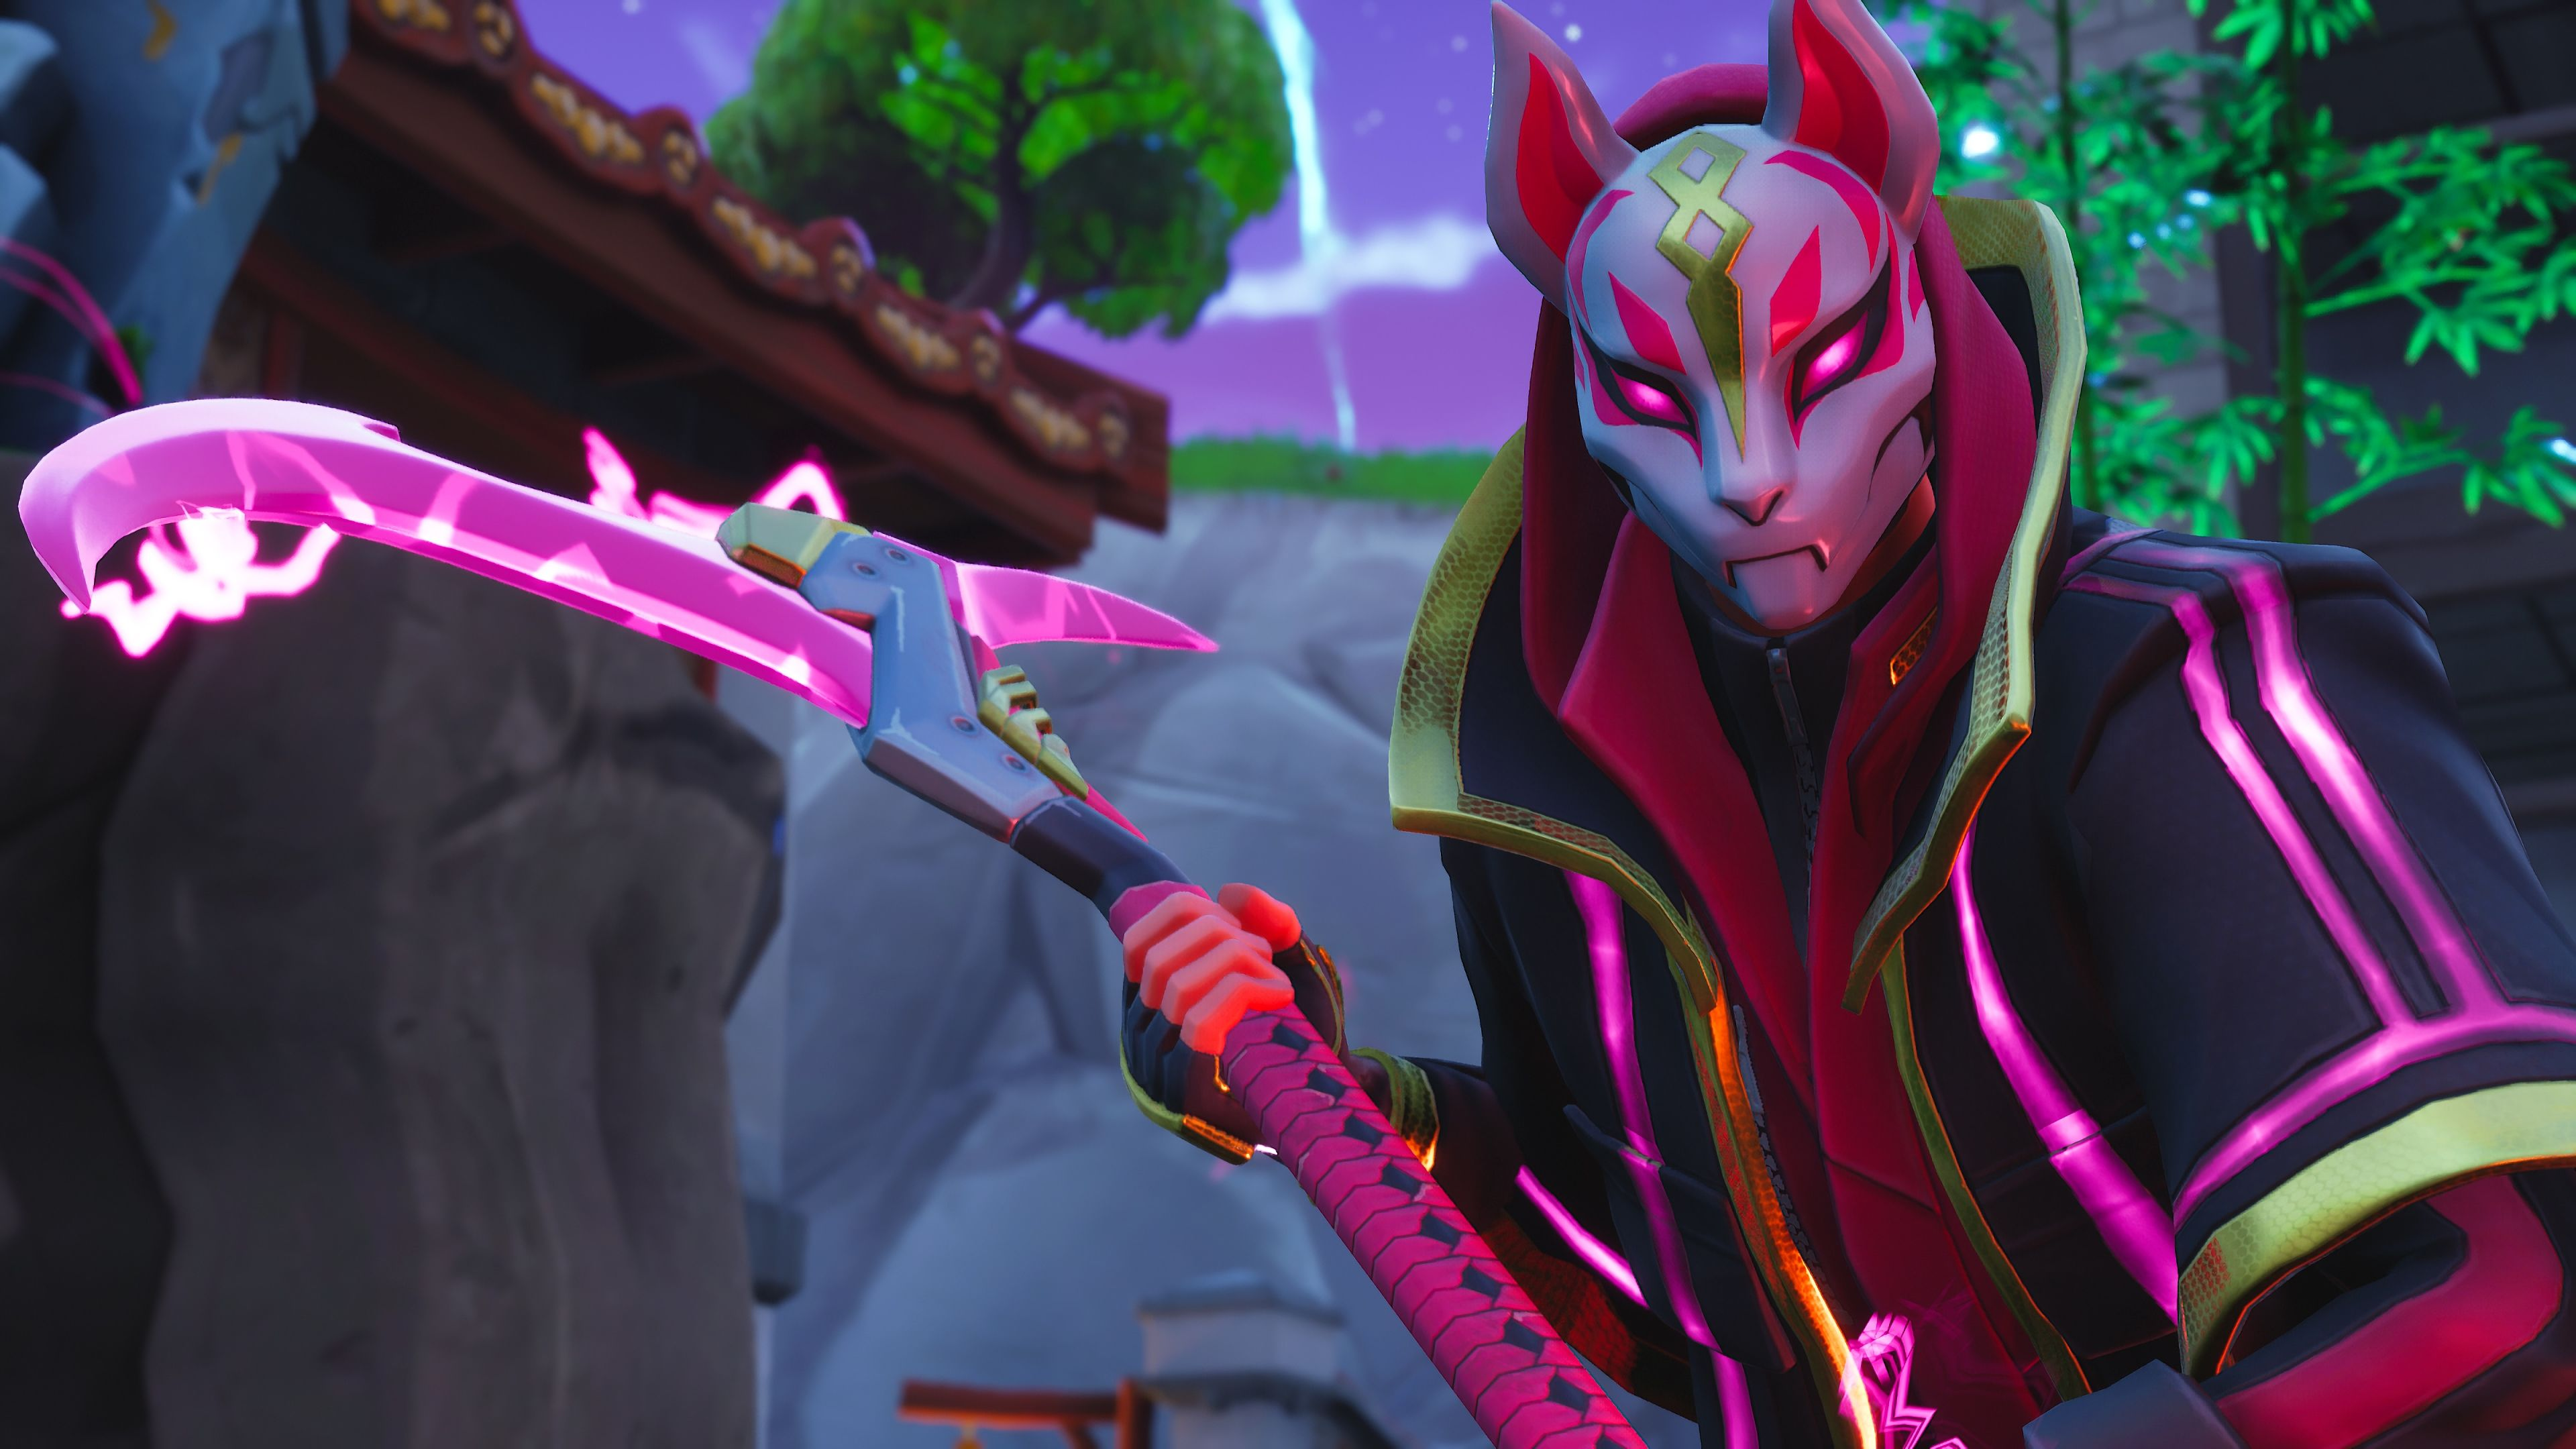 Drift Fortnite Battle Royale Video Game 3840x2160 Wallpaper